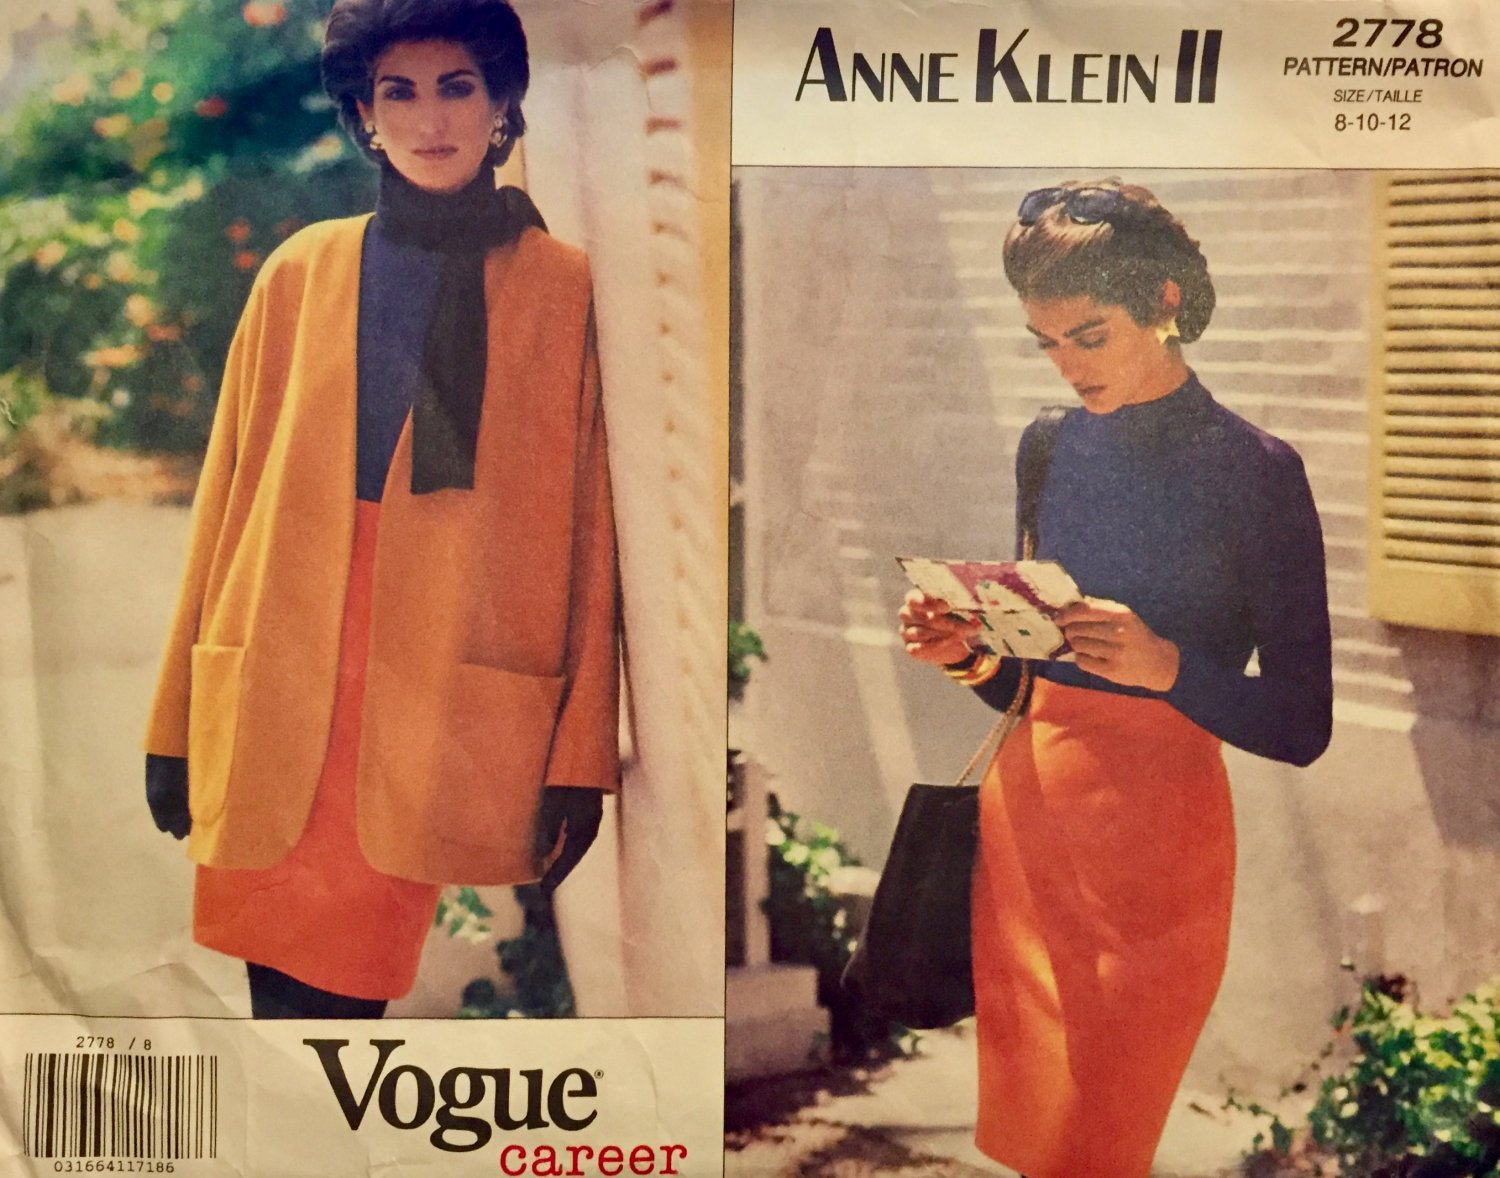 Vogue 2778 Anne Klein II sewing pattern size 8 10 12 Career Skirt,  Bodysuit and Jacket